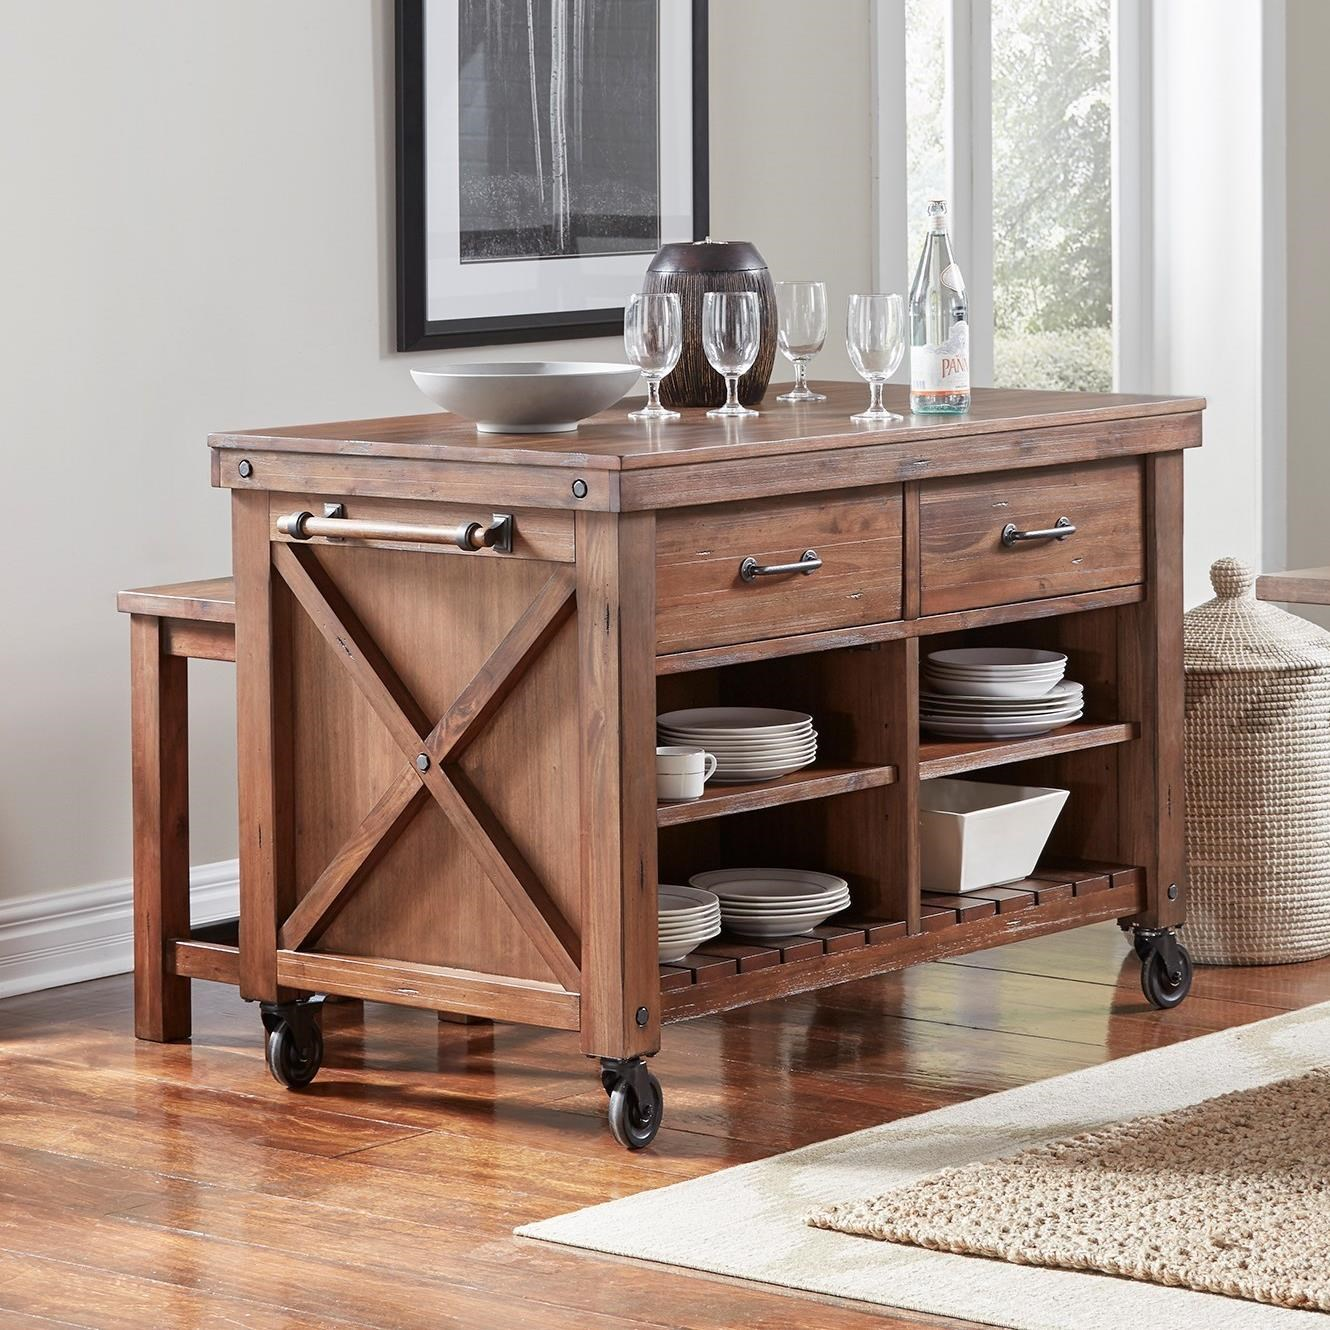 Anacortes Kitchen Island with Wood Top by AAmerica at Zak's Home